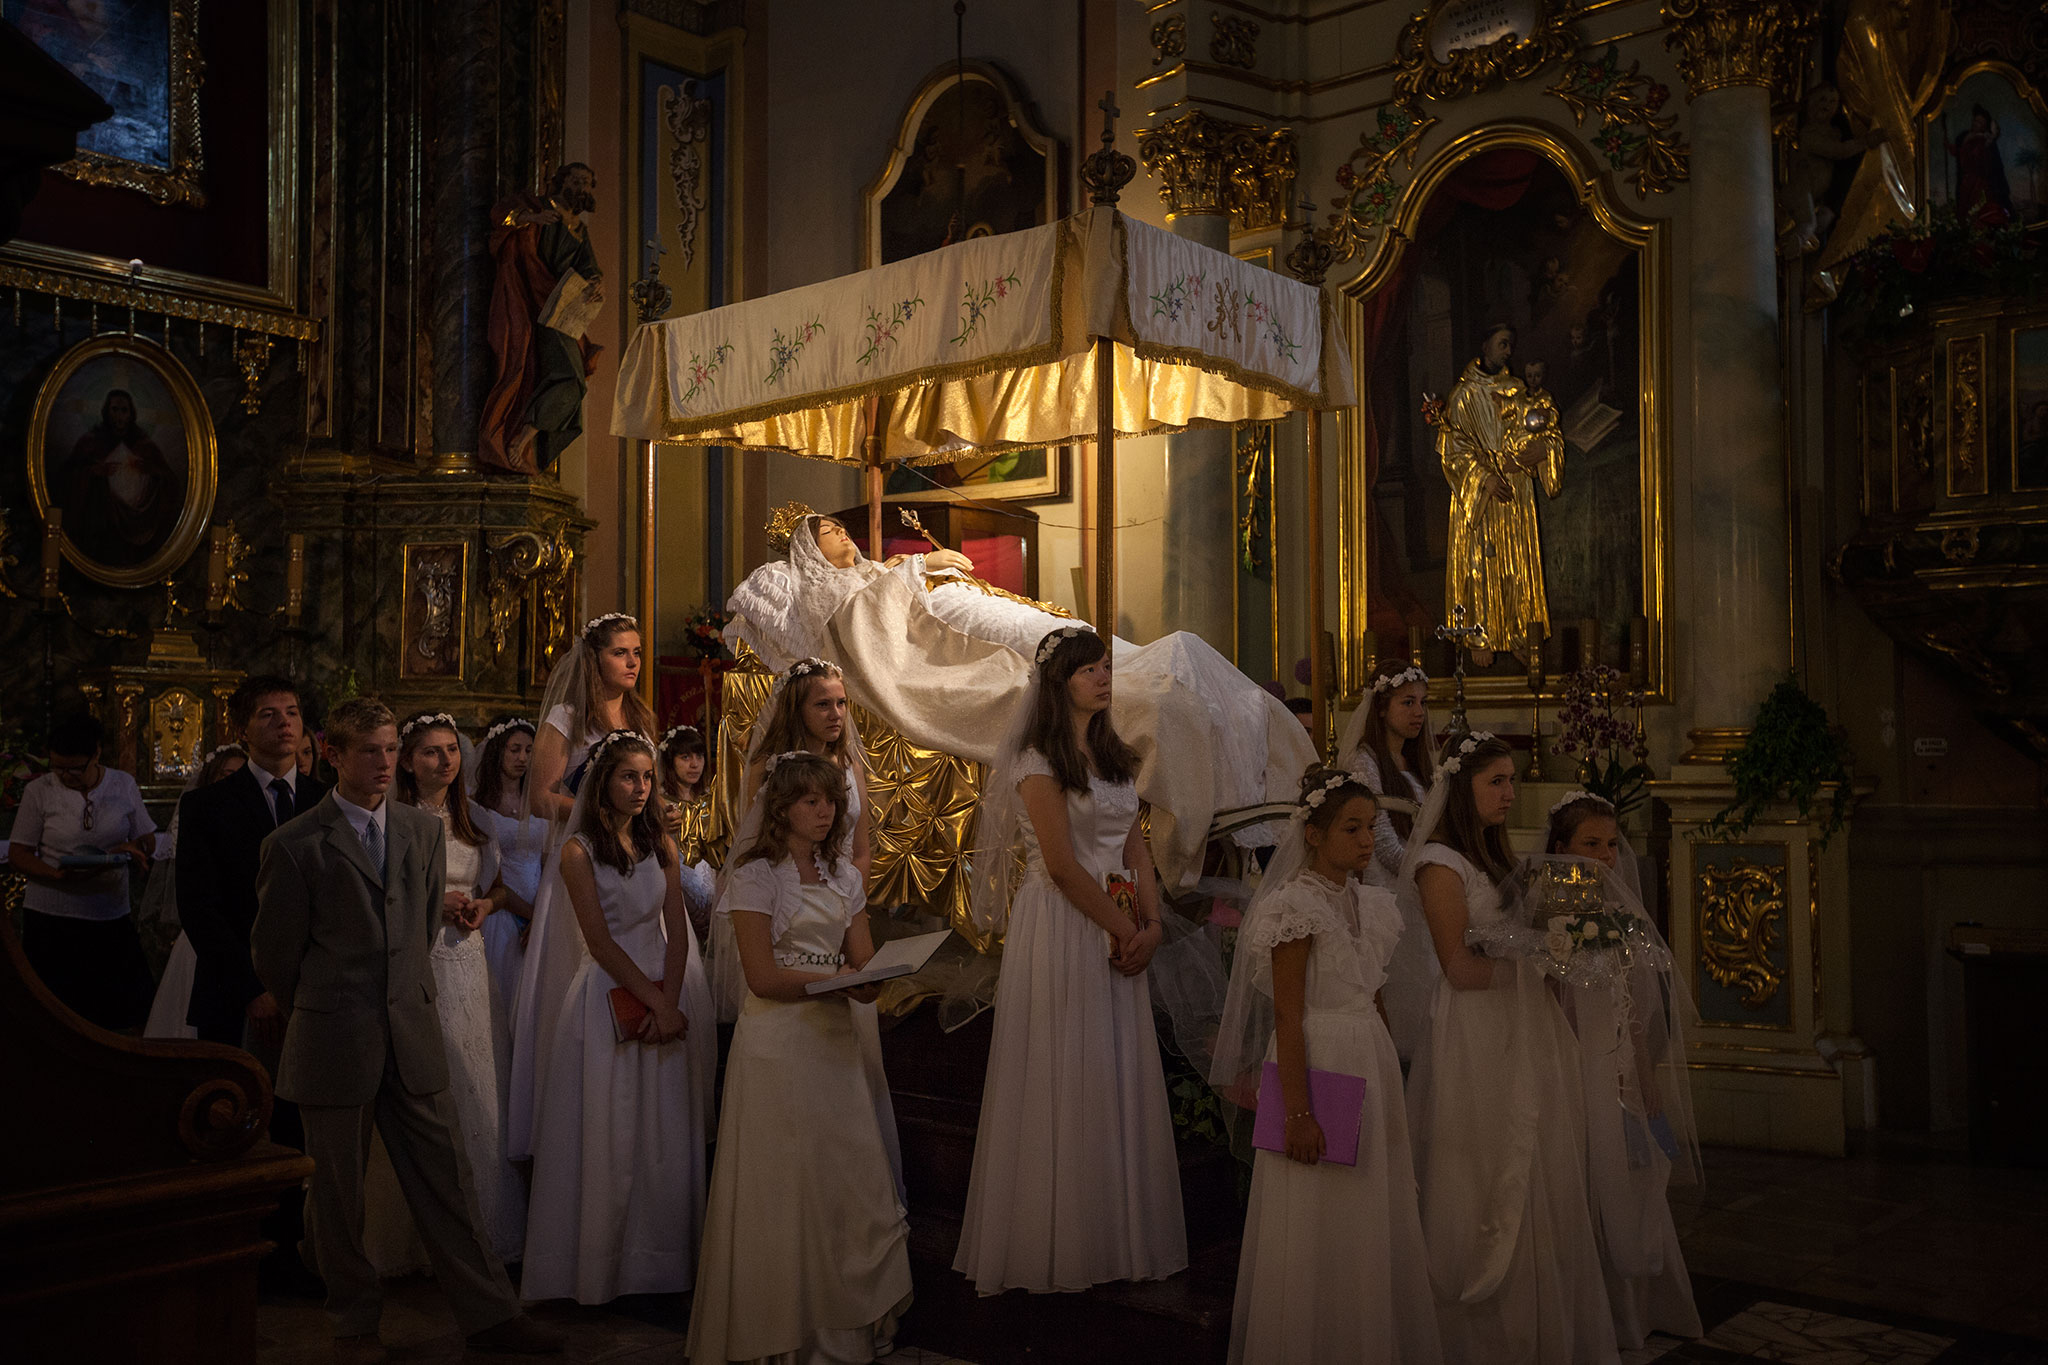 Mary is a magnet for young and old. On August 12, during a Mass celebrating her assumption into heaven, Roman Catholic youths guard a life-size figure in Kalwaria Pacławska, Poland. The Feast of the Assumption is a weeklong festival here.